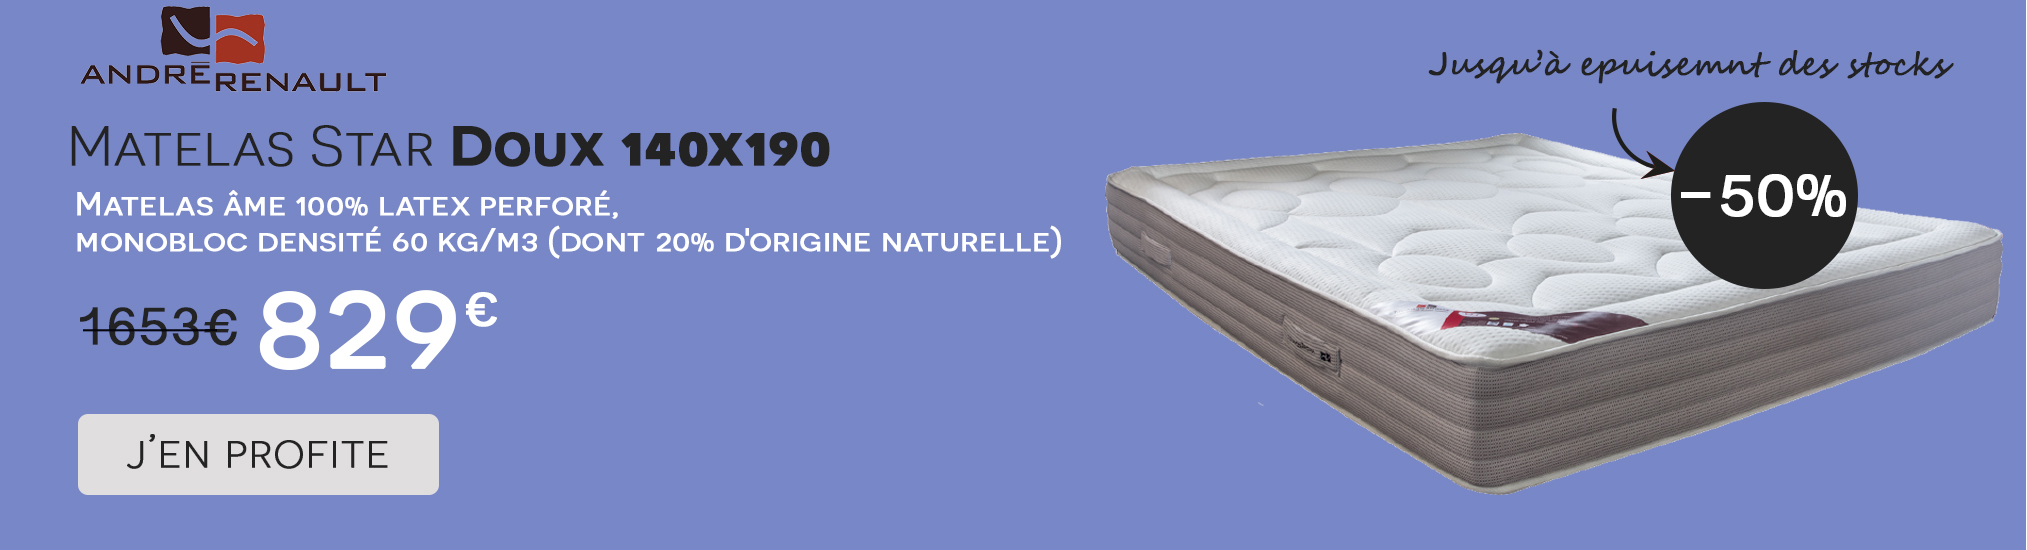 Vente Flash Star Doux Andre Renault 140x190